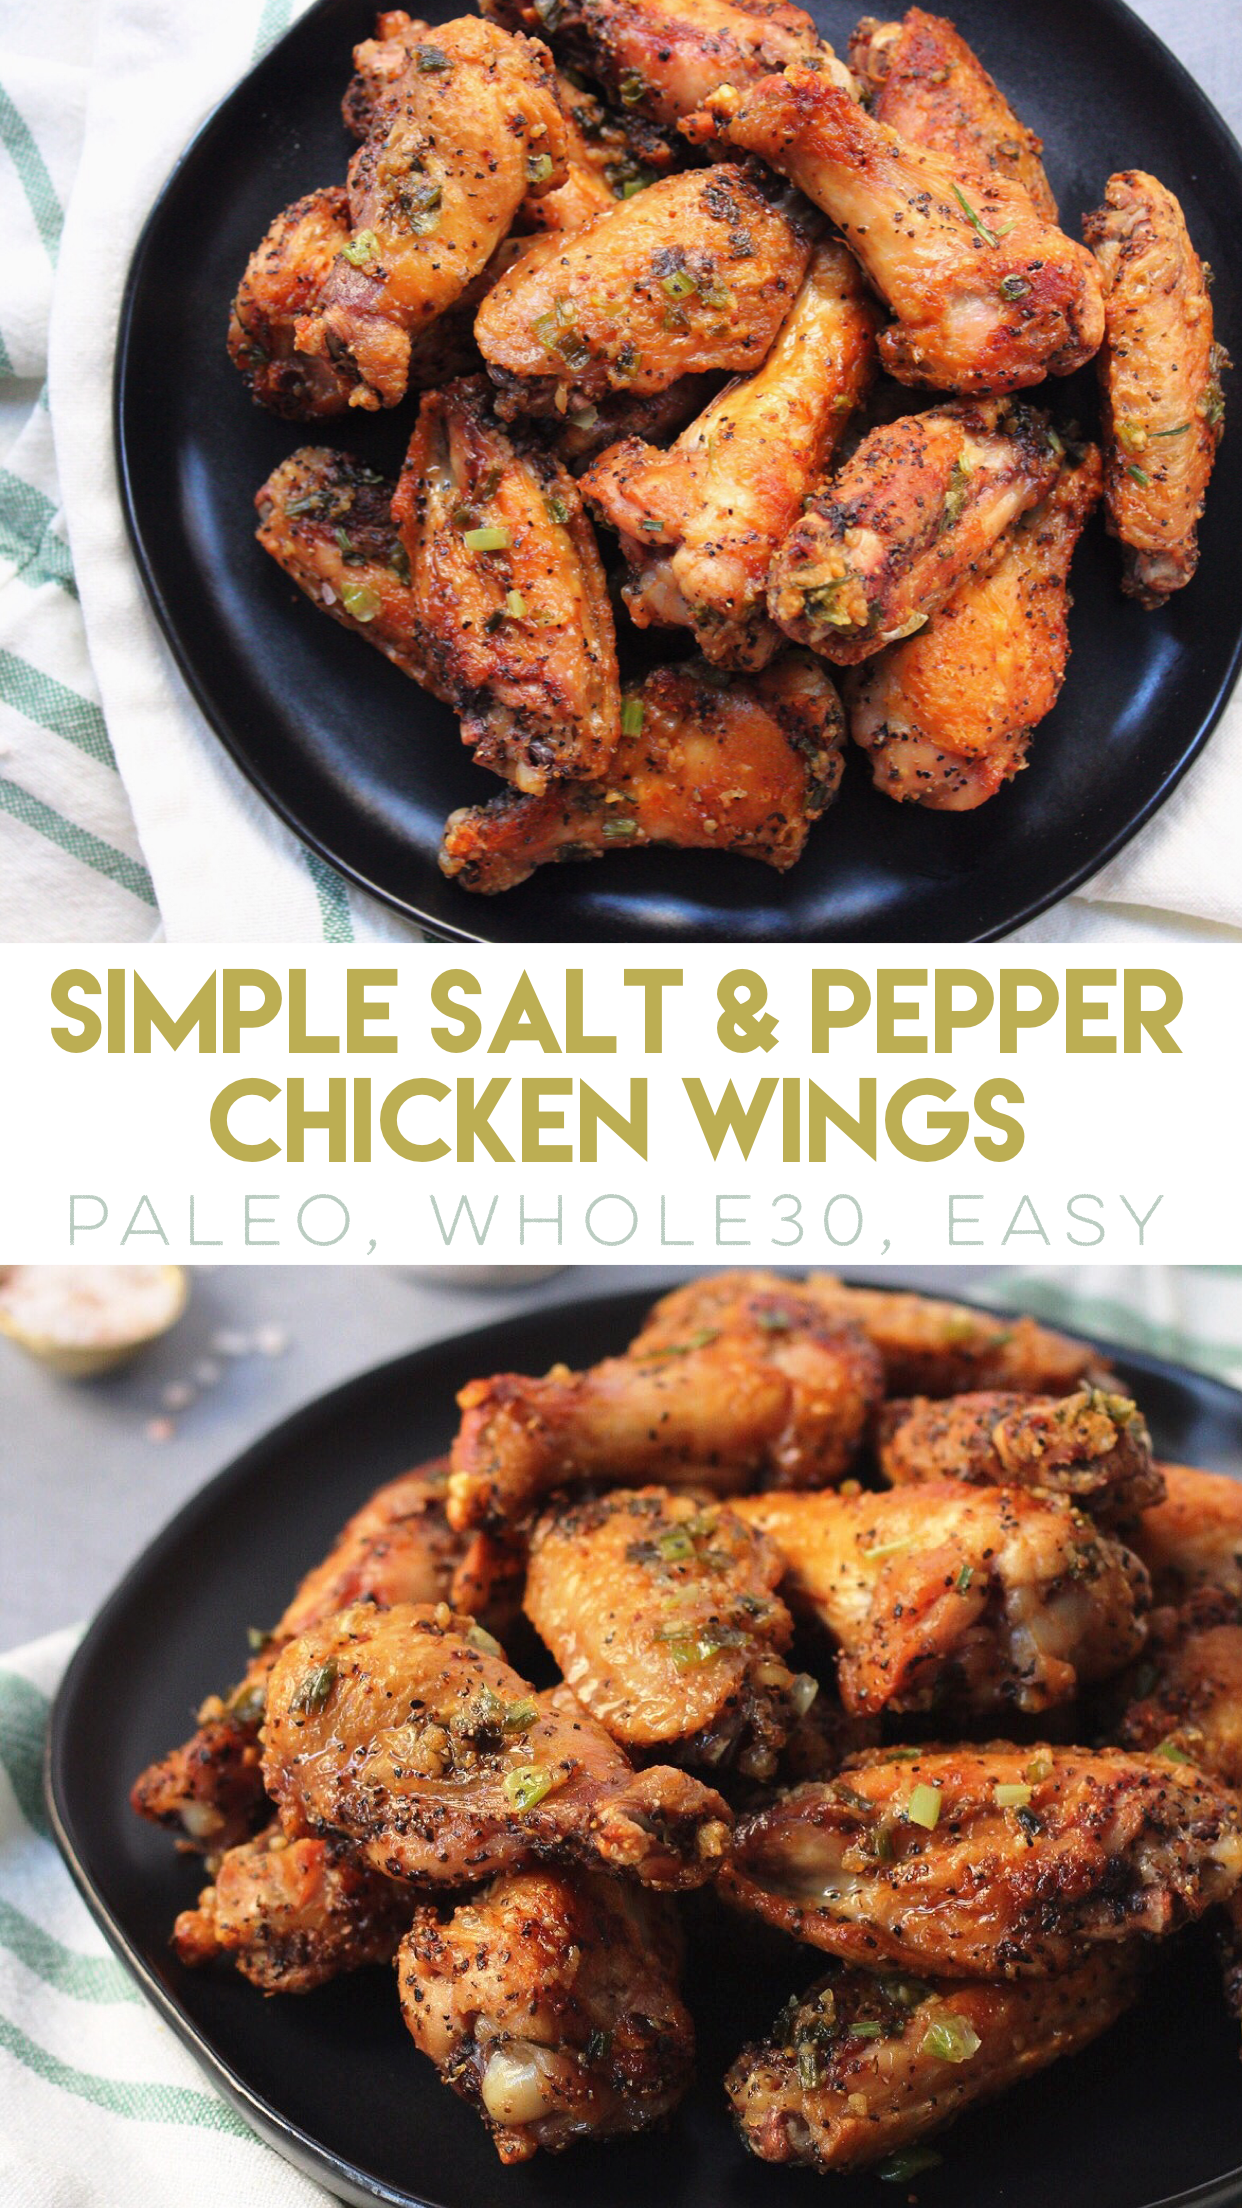 Simple Paleo Salt and Pepper Chicken Wings are easy to make, low carb only use a few ingredients, and are the perfect game day healthy wing recipe, or Whole30 chicken wing option! #paleochickenwings #paleo #whole30recipes #lowcarbchicken via @paleobailey